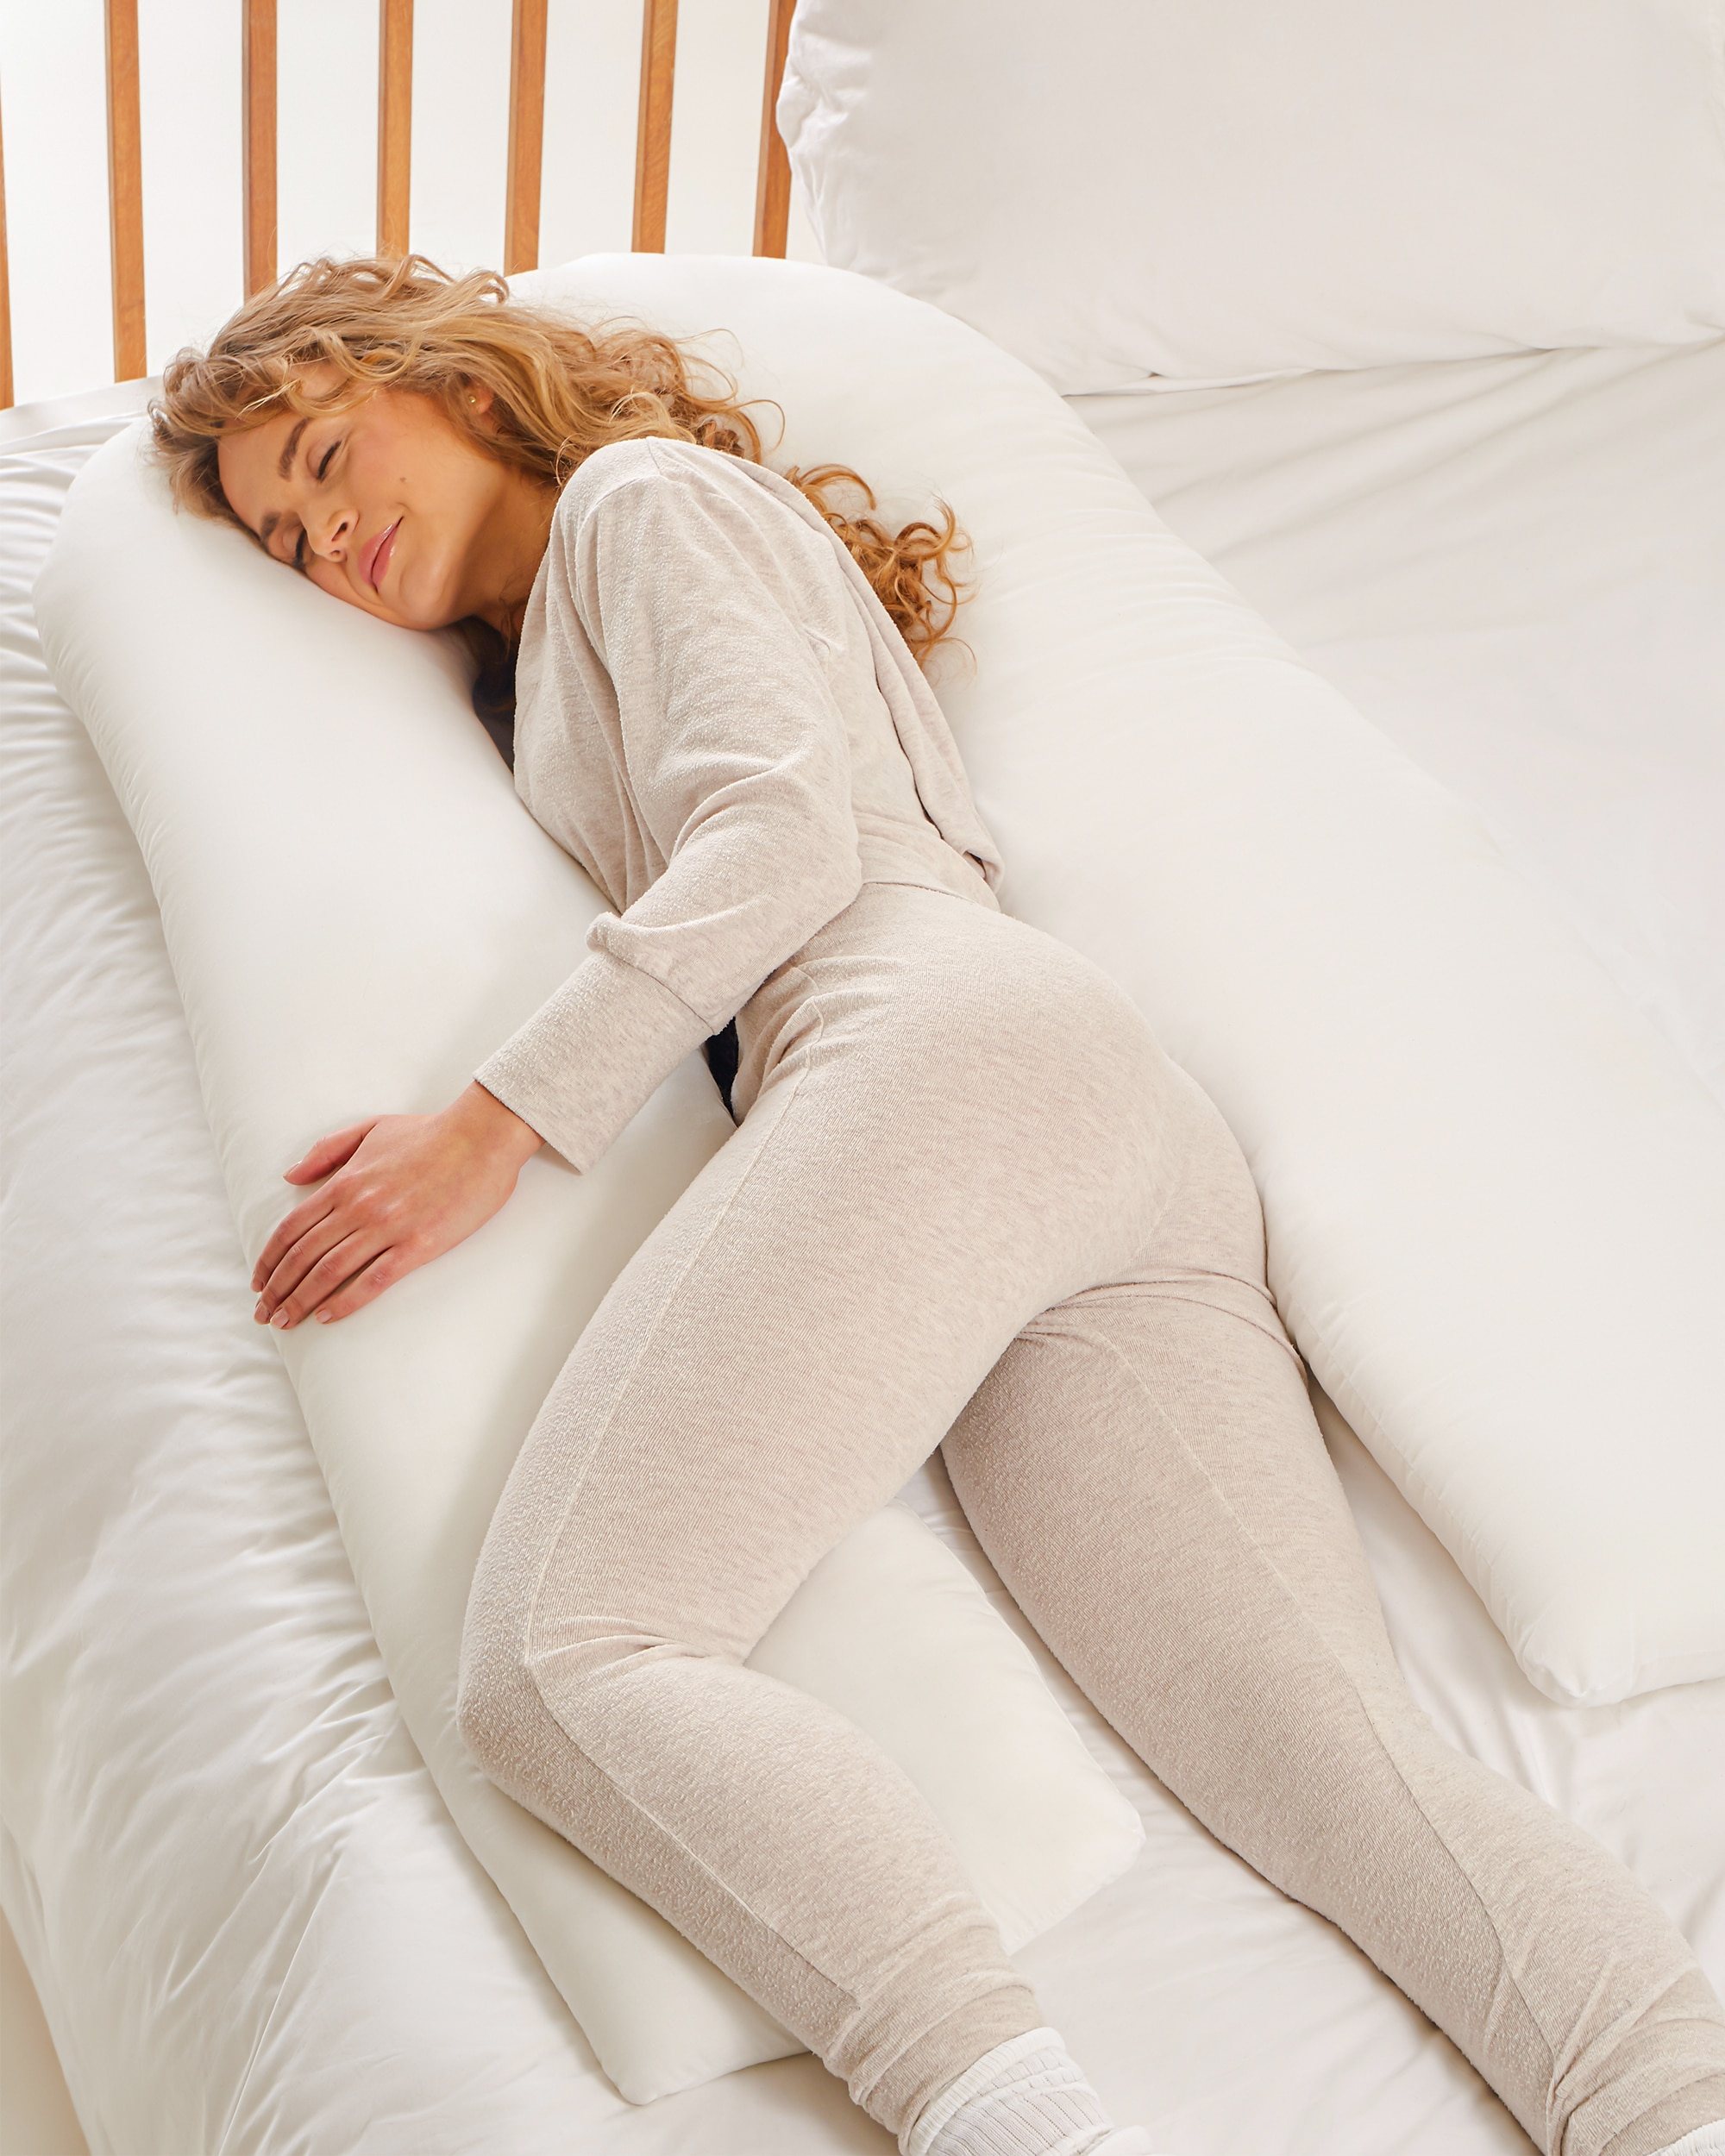 Kally U-Shaped Pregnancy Pillow